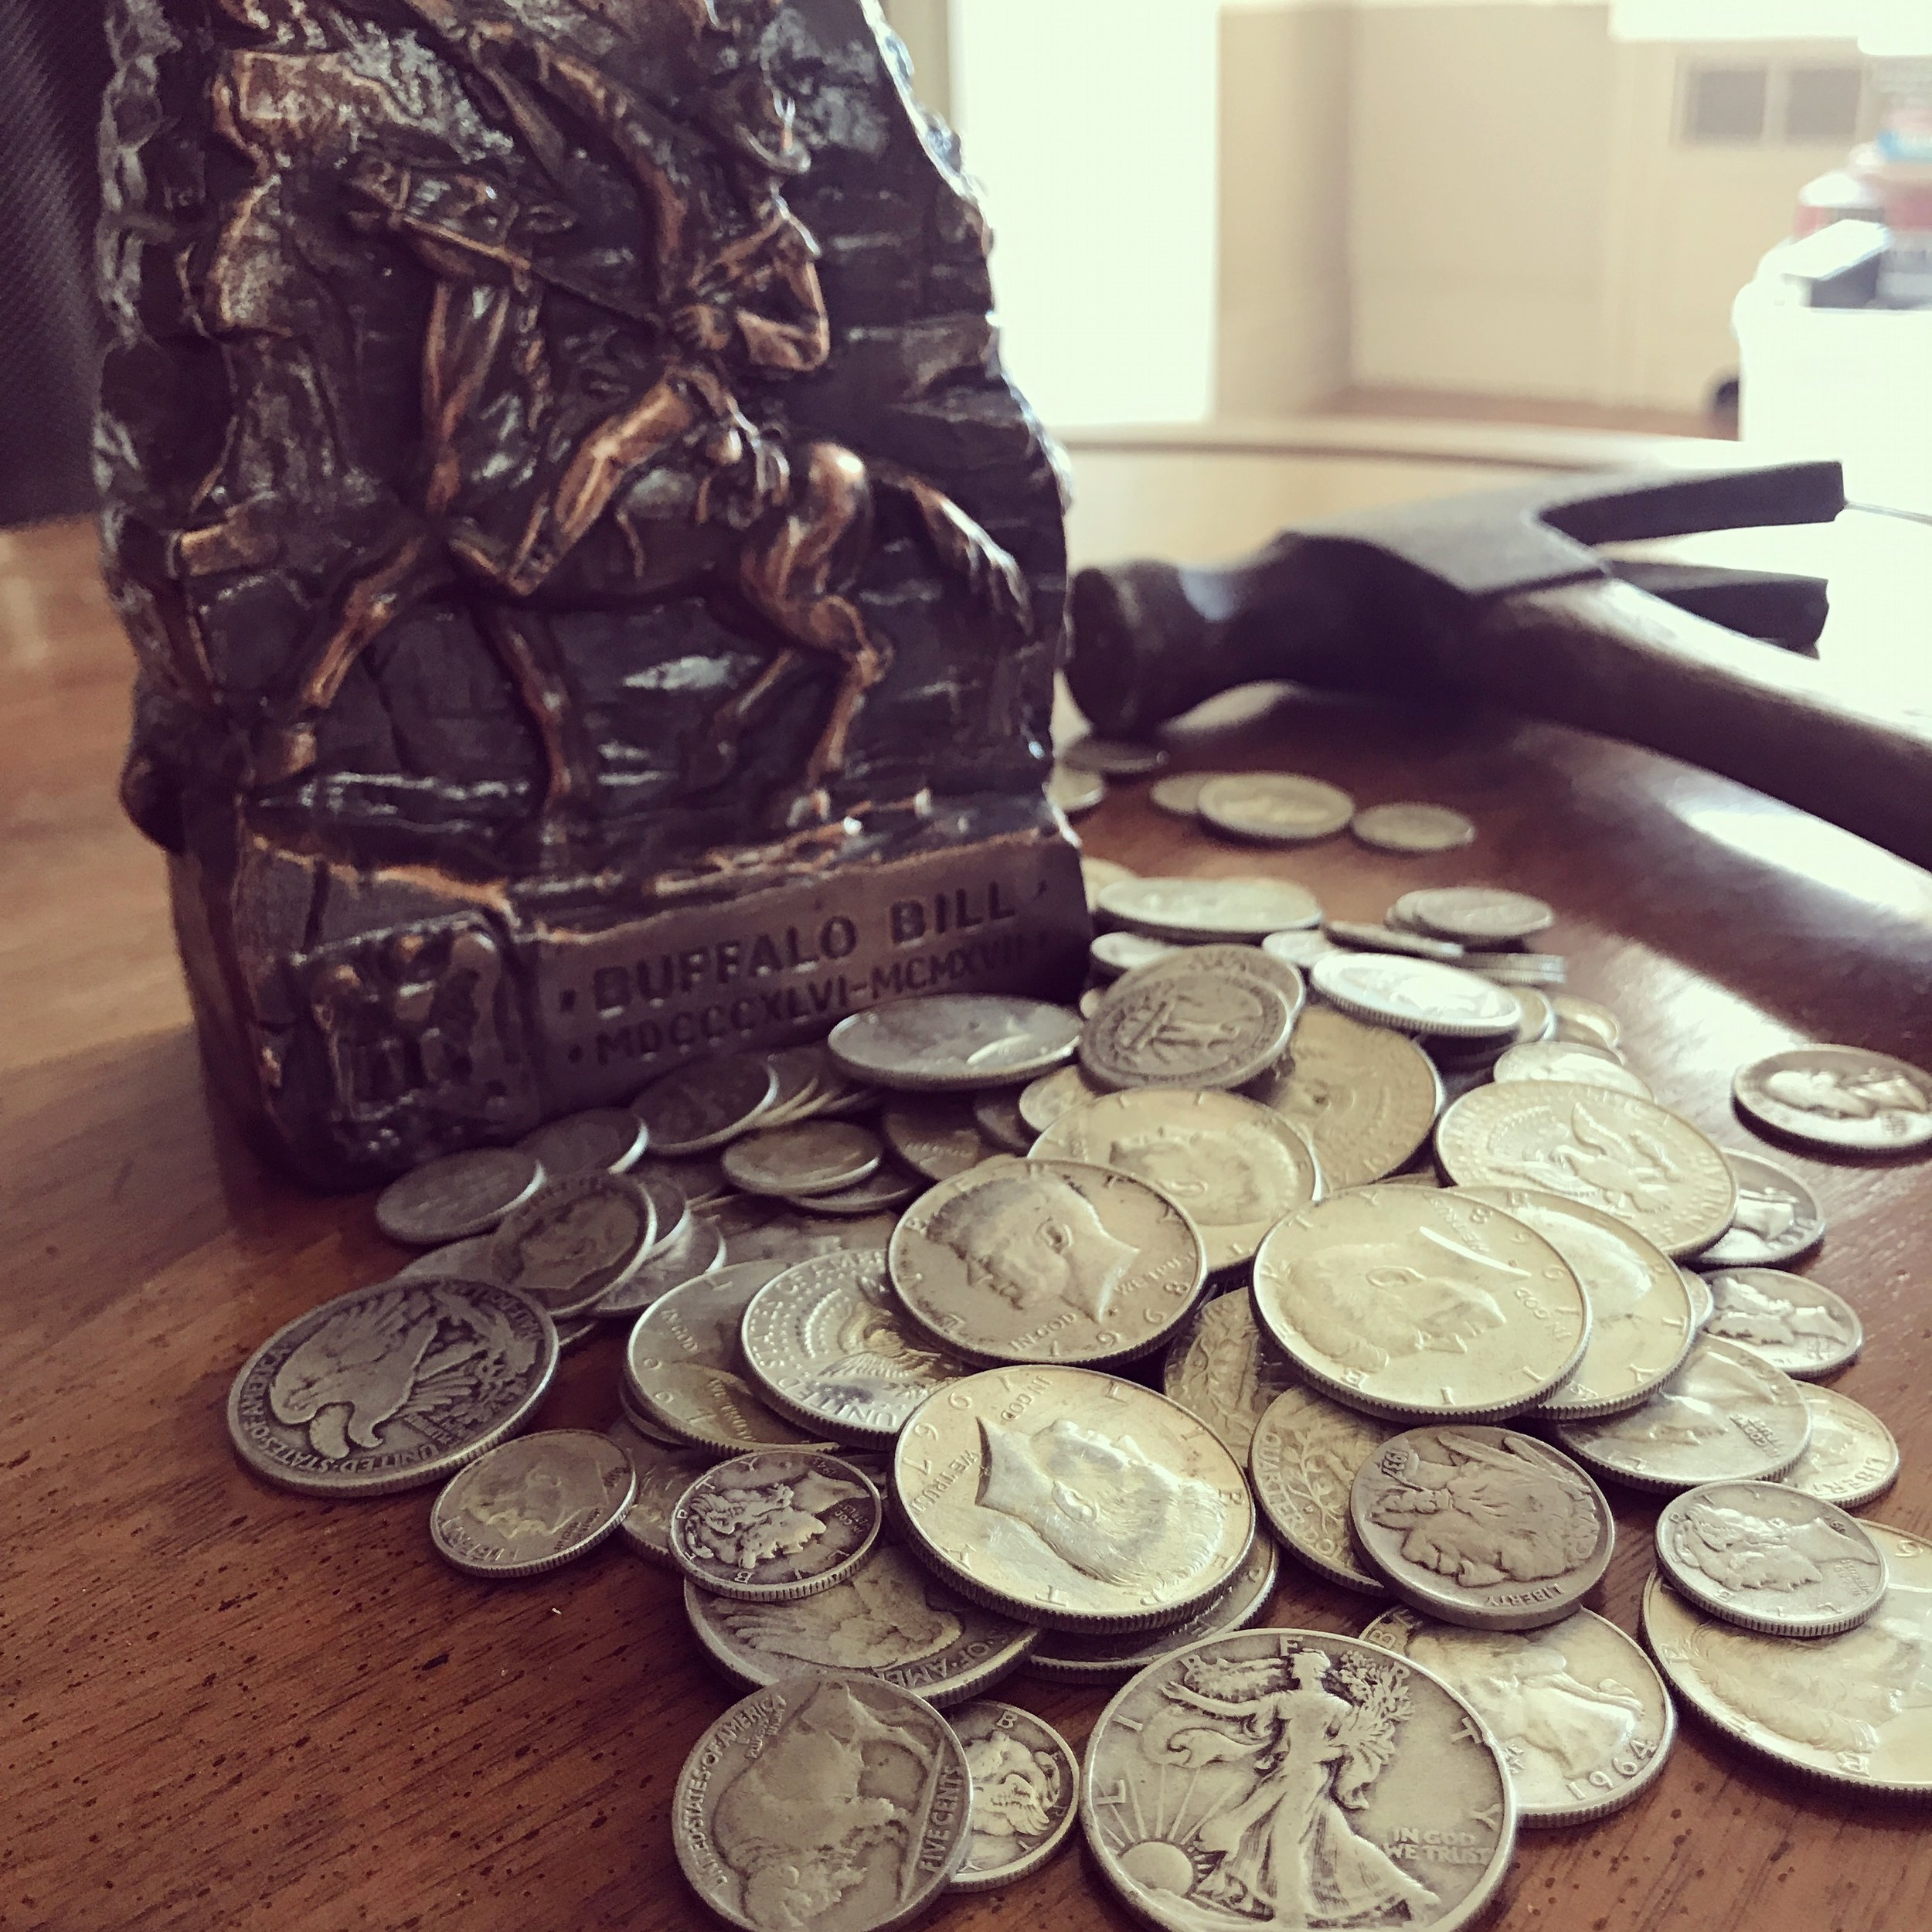 We found this old coin bank and busted it open. Silverrrrr! Arrr!